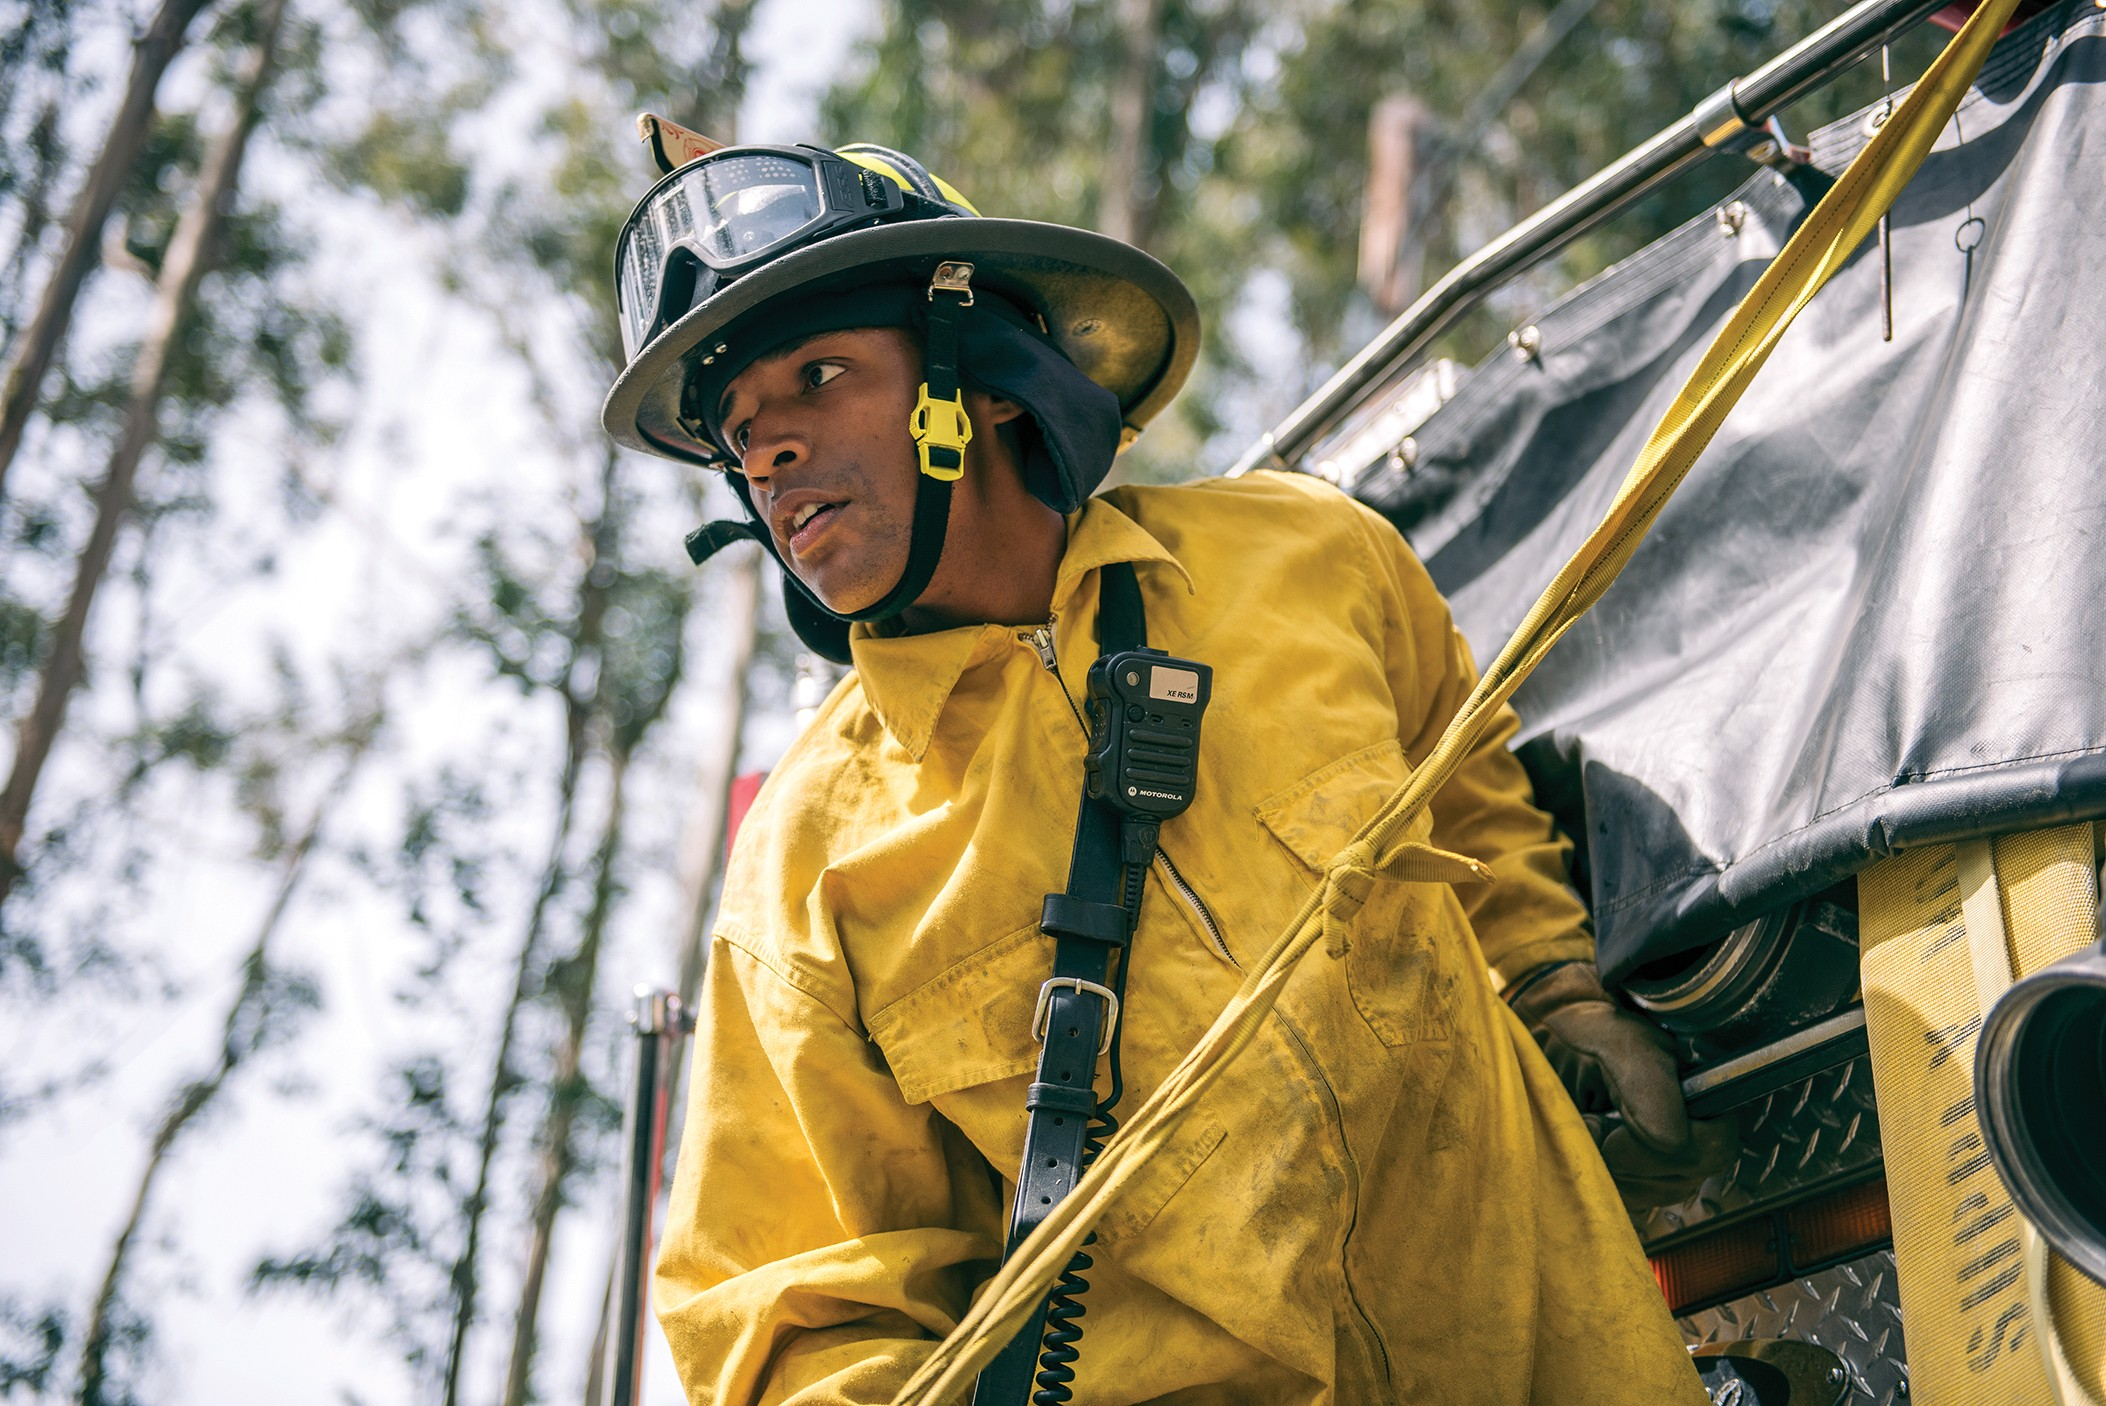 Bright Sparks: While the Oakland Fire Department Takes Heat, a New